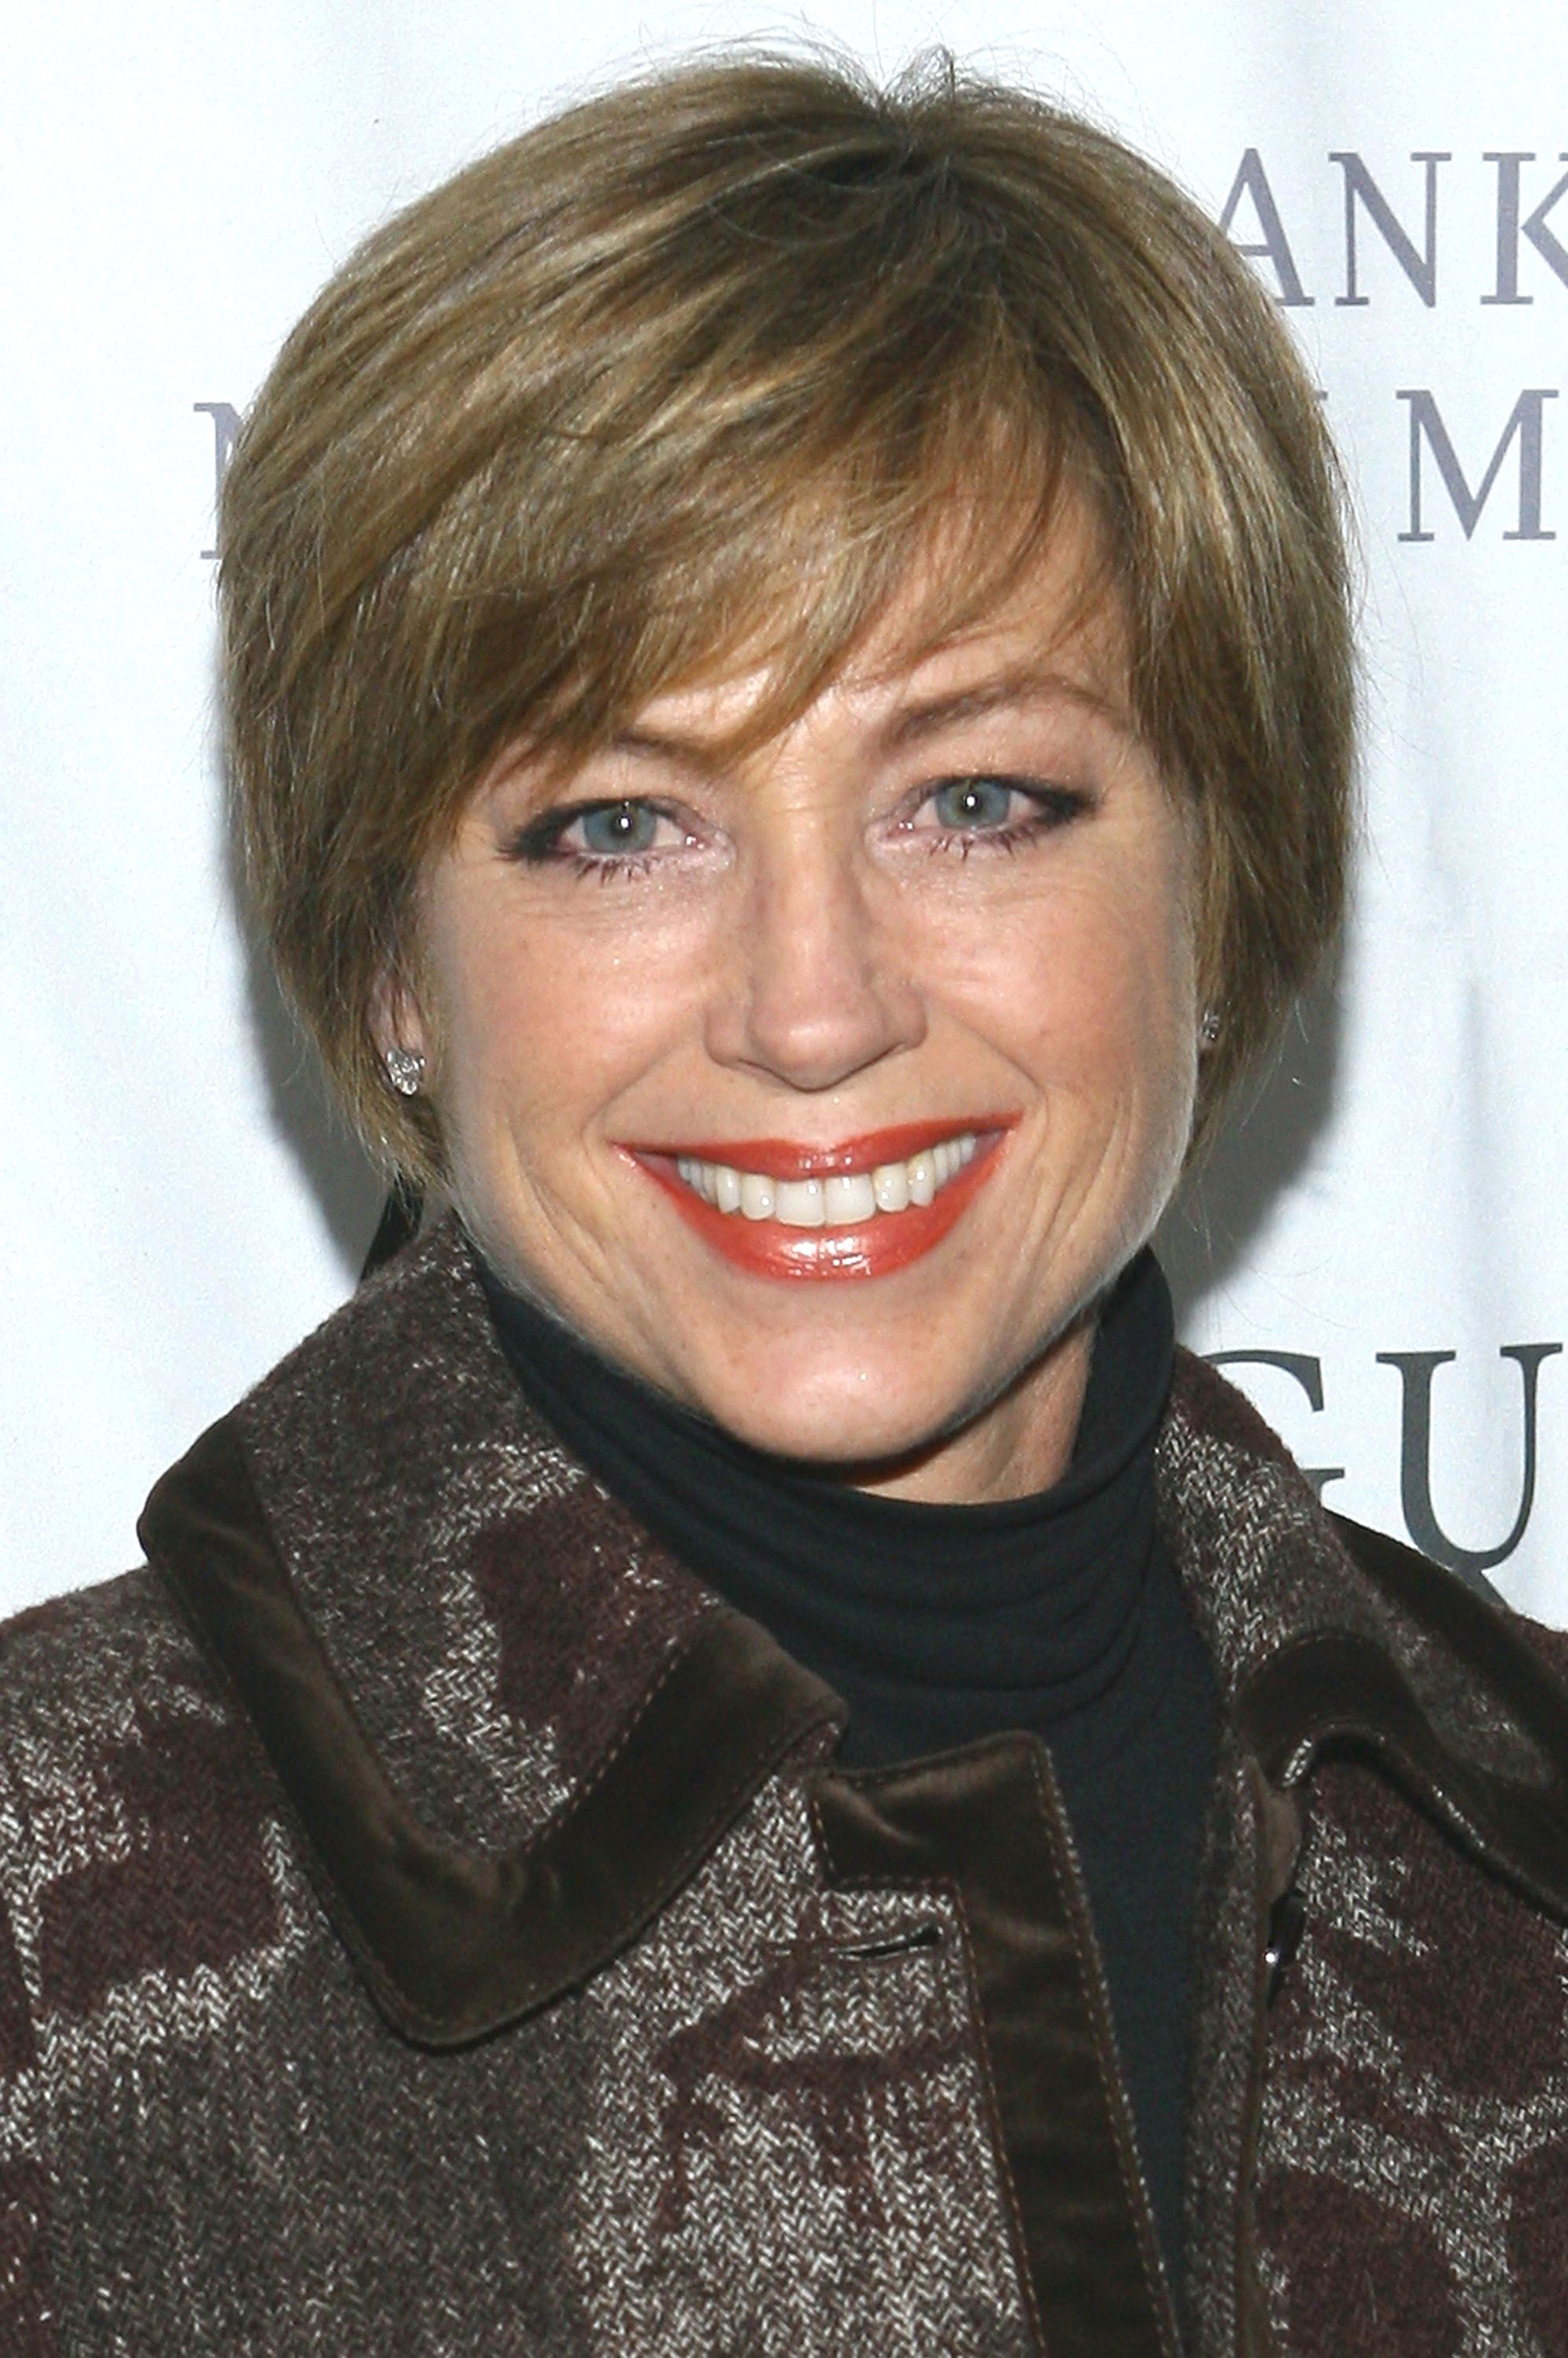 hairstyle for women | hairstyles in 2019 | dorothy hamill